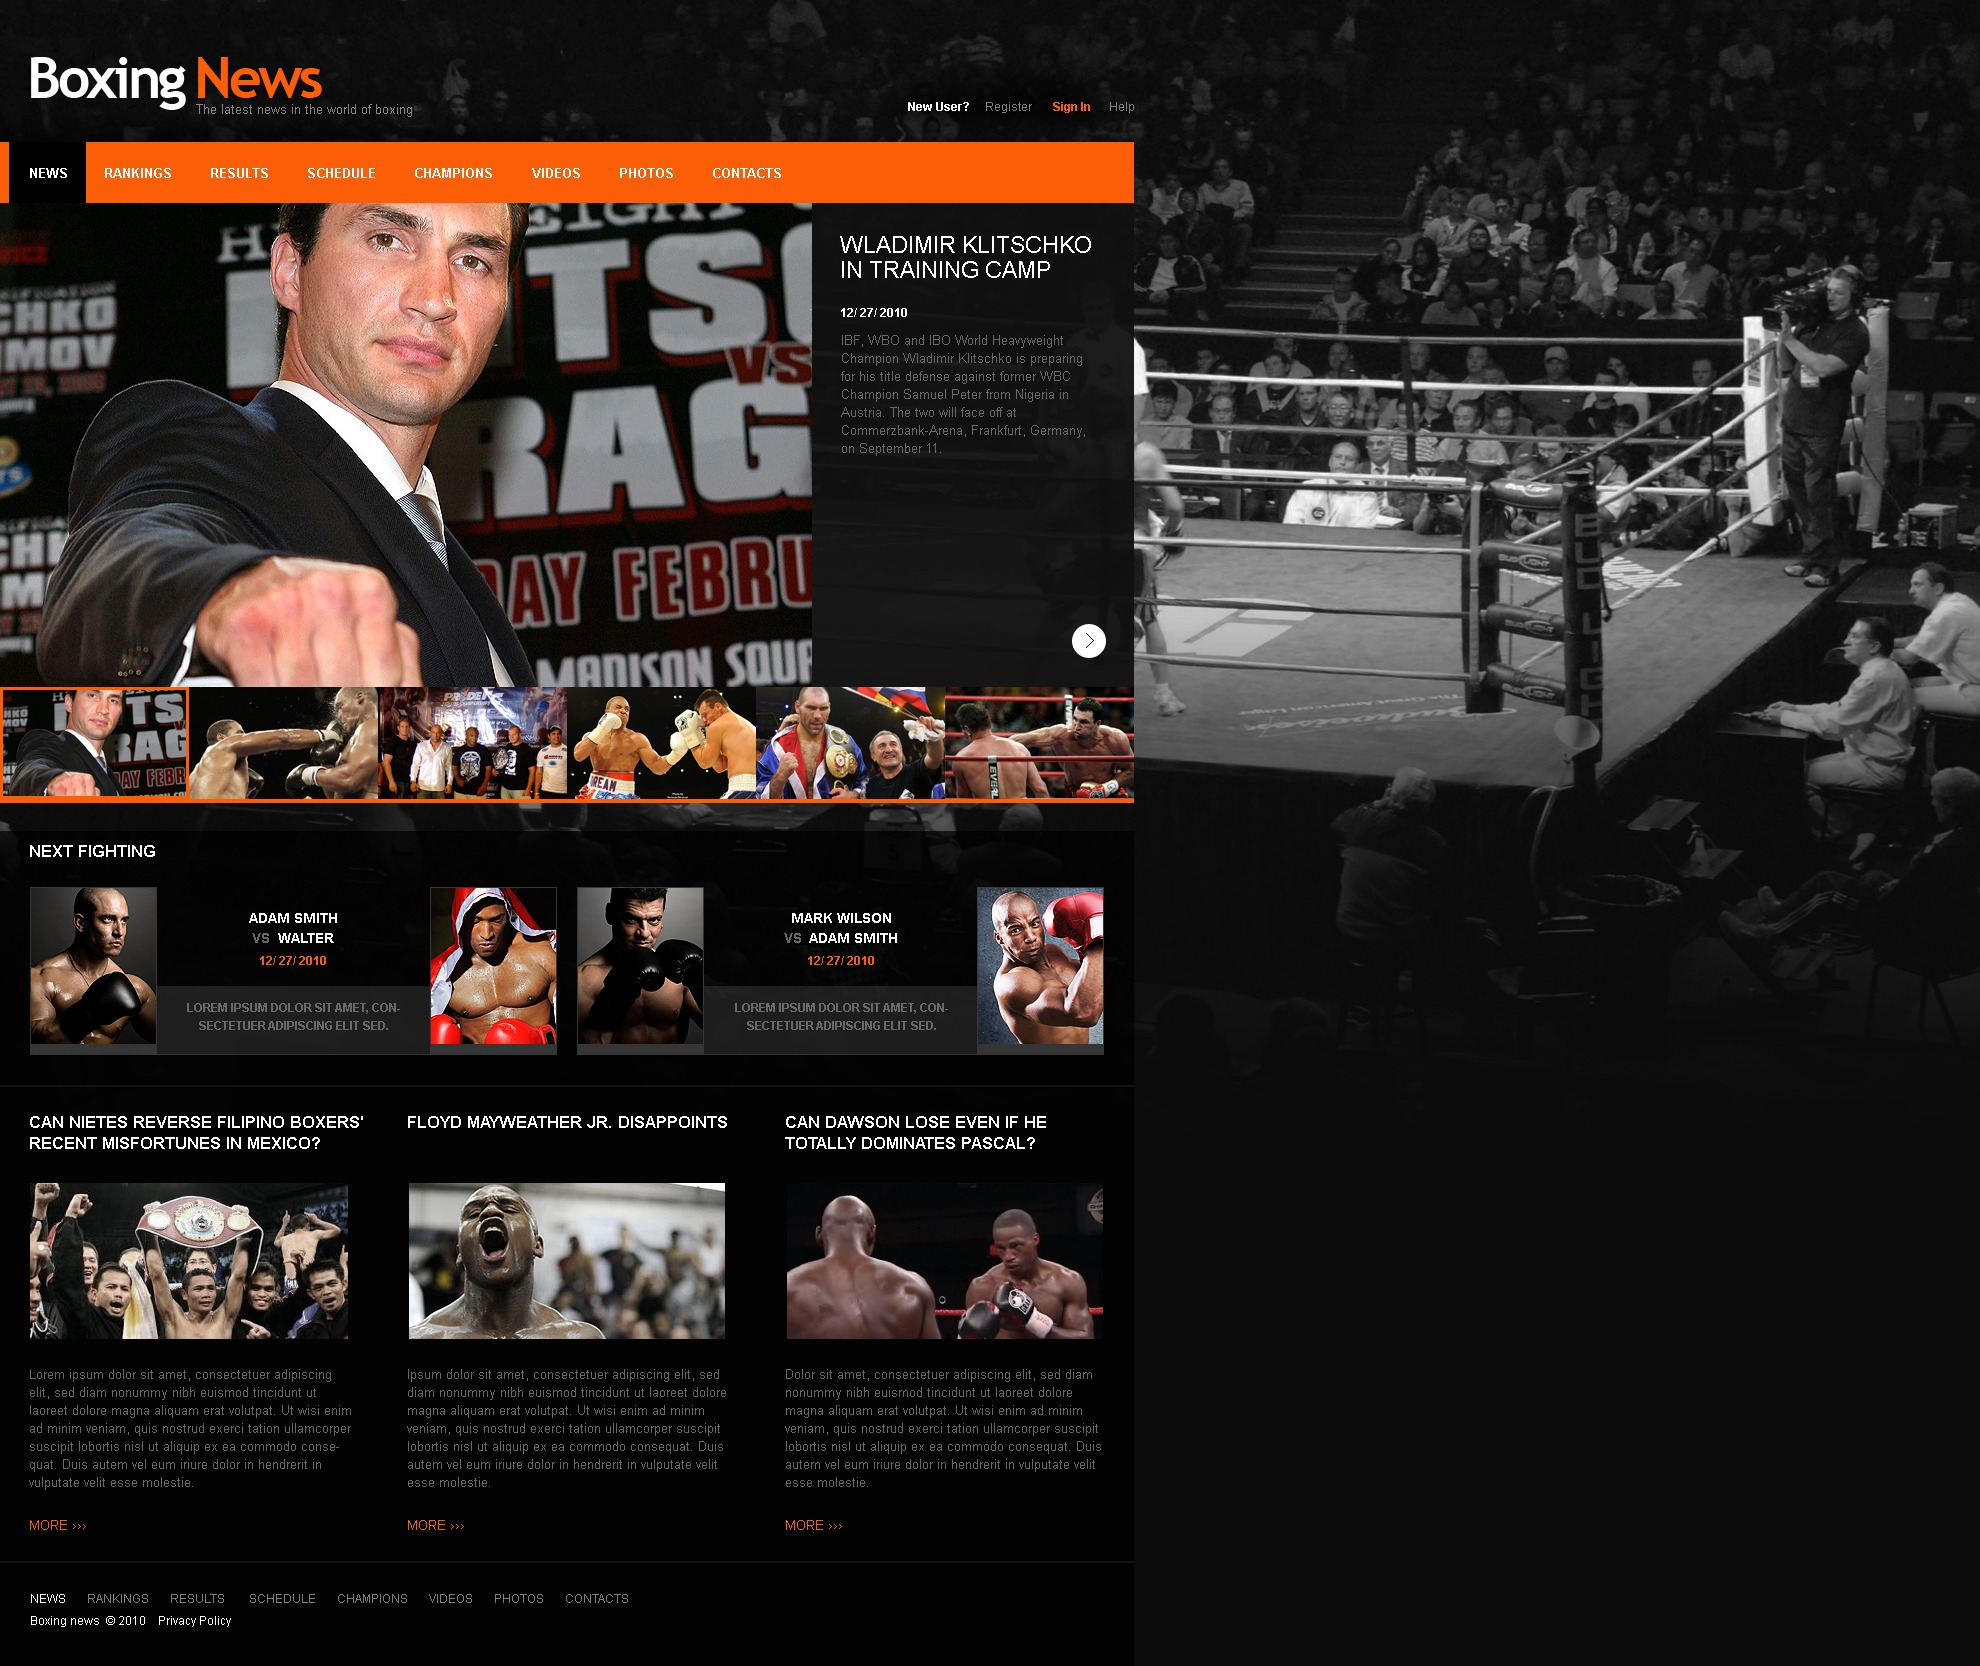 The Boxing Sport Portal PSD Design 54324, one of the best PSD templates of its kind (sport, wide, jquery), also known as boxing sport portal PSD template, fighter PSD template, ring PSD template, match PSD template, championship PSD template, tournament PSD template, sportsman PSD template, community PSD template, schedule PSD template, statistic PSD template, fan PSD template, media PSD template, ticket PSD template, interview PSD template, coach PSD template, leadership PSD template, skill PSD template, sponsors PSD template, gallery PSD template, title PSD template, result PSD template, win PSD template, headgear PSD template, gloves PSD template, Thai mouthpiece PSD template, shoes PSD template, protective PSD template, equipment PSD template, events and related with boxing sport portal, fighter, ring, match, championship, tournament, sportsman, community, schedule, statistic, fan, media, ticket, interview, coach, leadership, skill, sponsors, gallery, title, result, win, headgear, gloves, Thai mouthpiece, shoes, protective, equipment, events, etc.